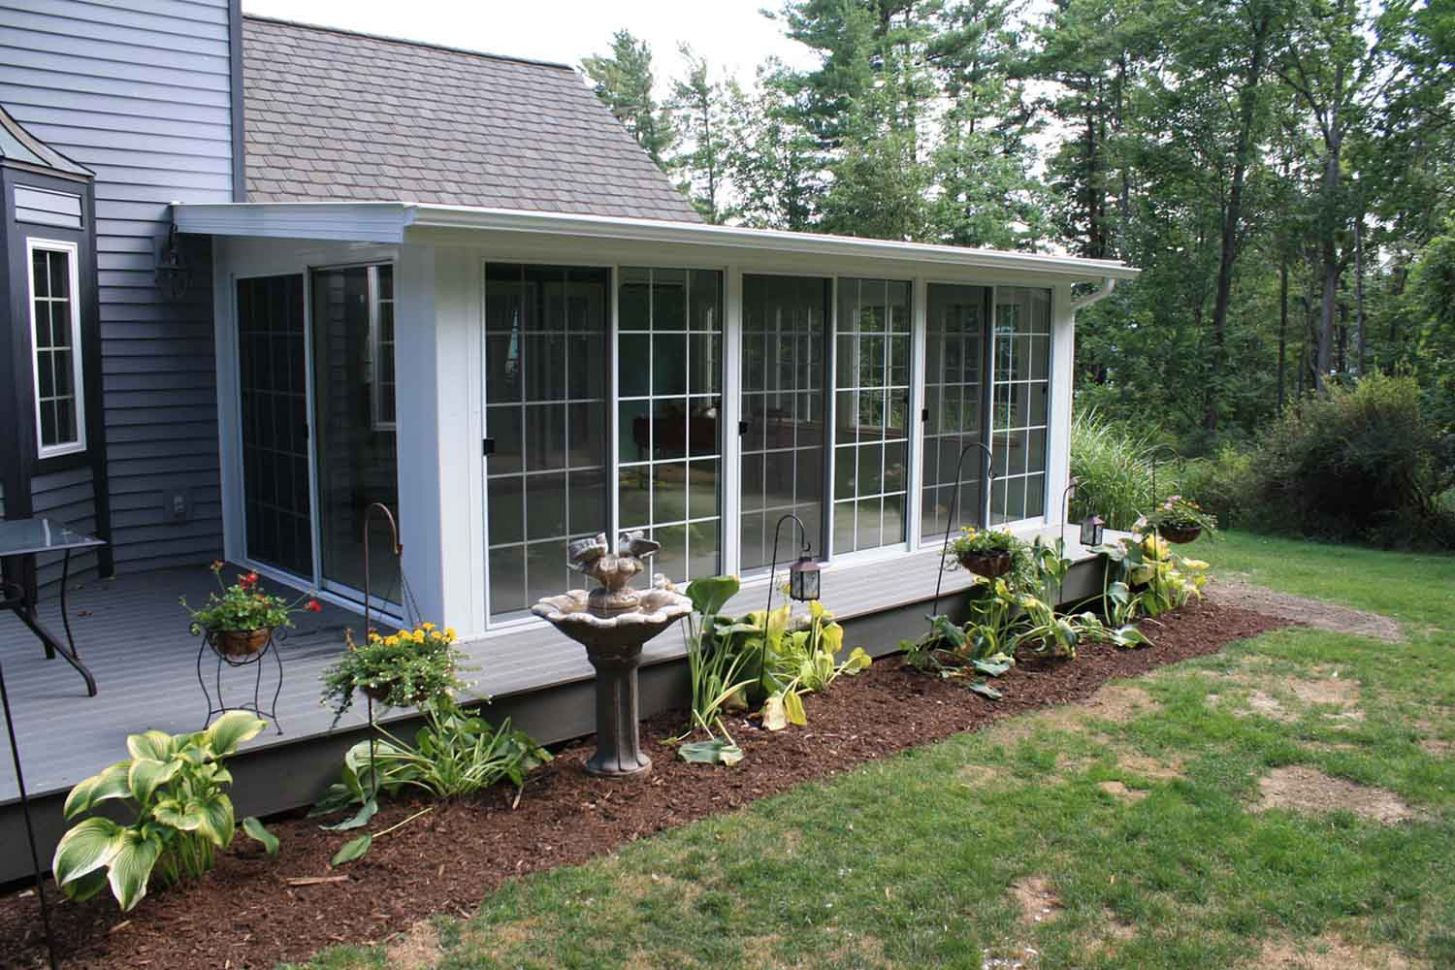 Small Sunroom Kits For Decks Room Decors And Design Kitchen ..